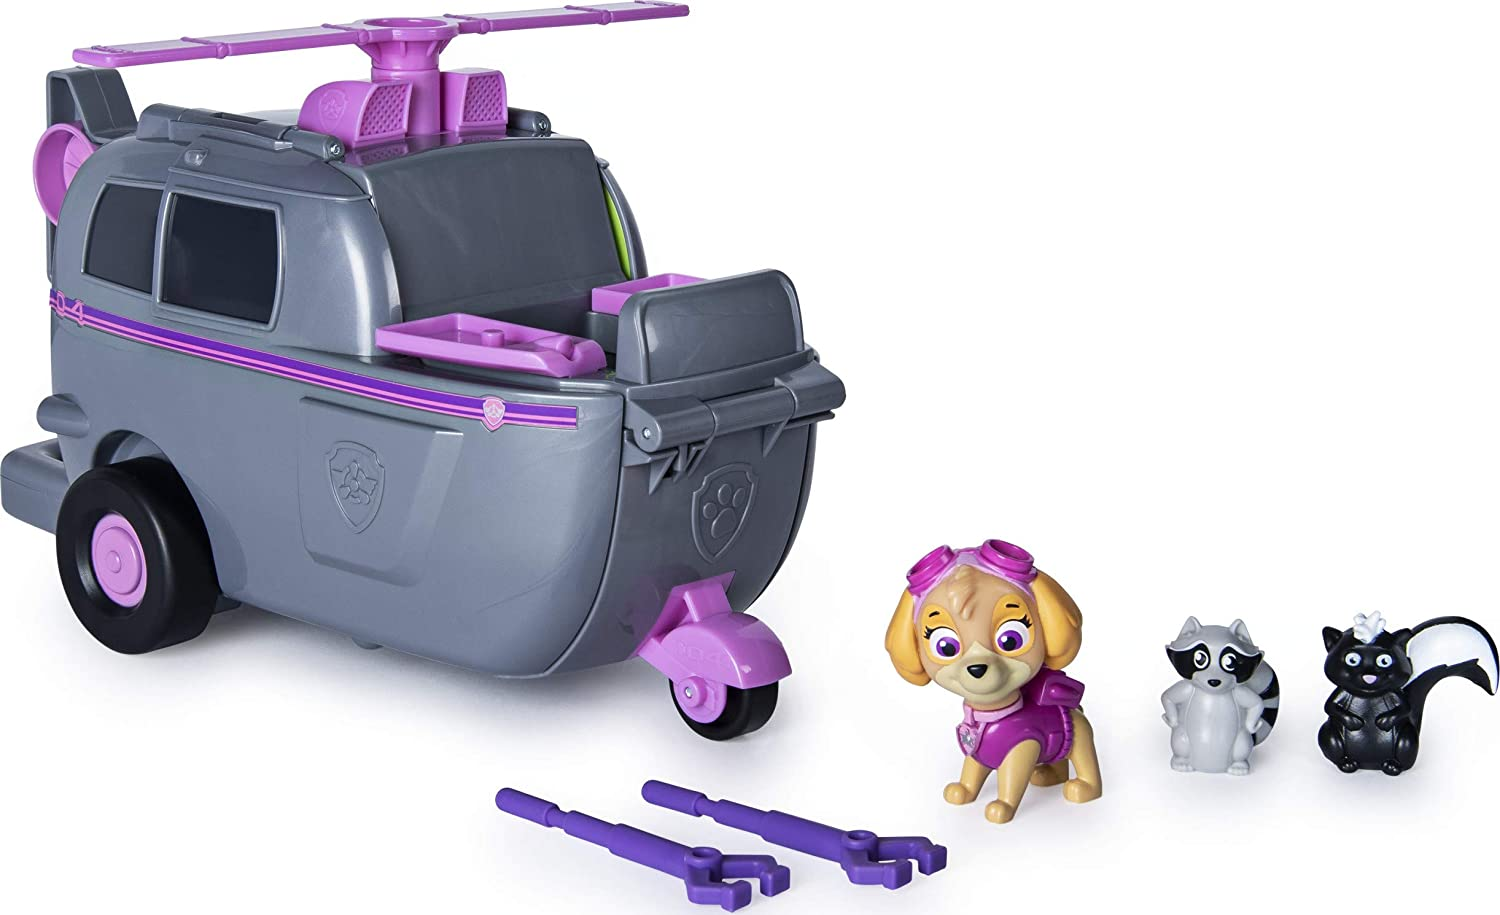 PAW Patrol, Skye's Ride N Rescue, 2-in-1 Transforming Playset and Helicopter, for Kids Aged 3 and Up: Toys & Games